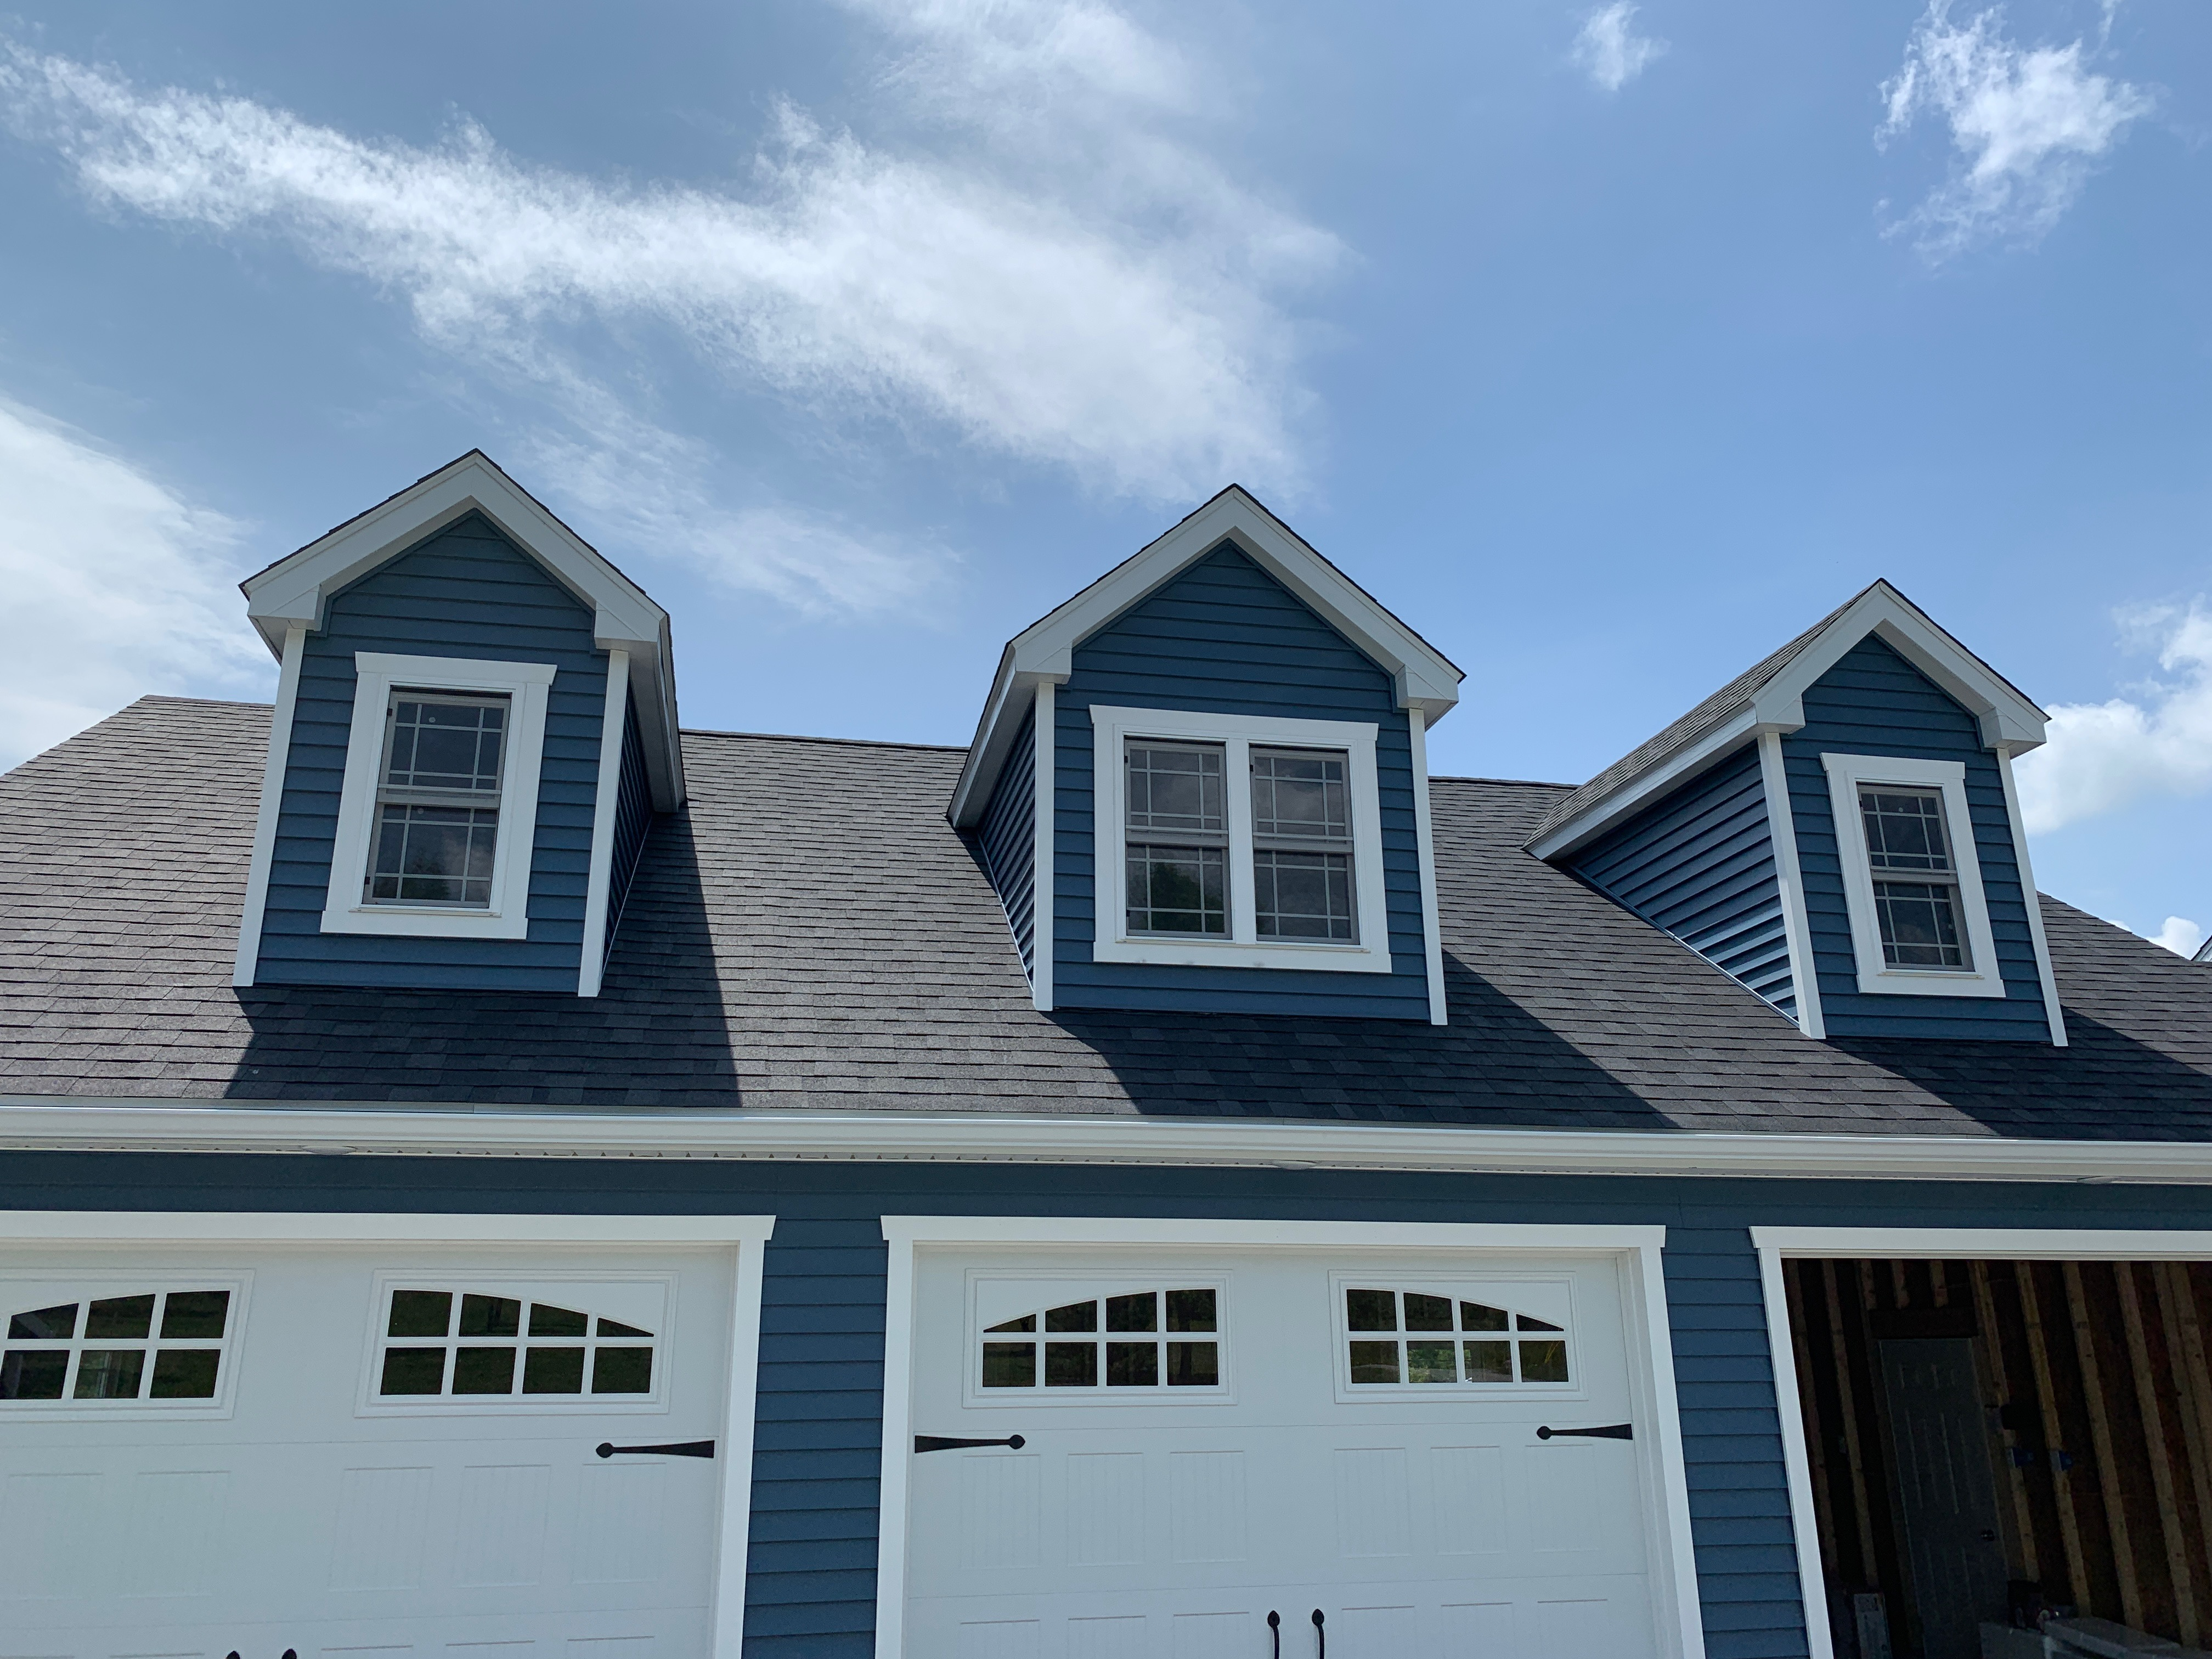 4 foot and 6 foot dormer options Three Car Garages